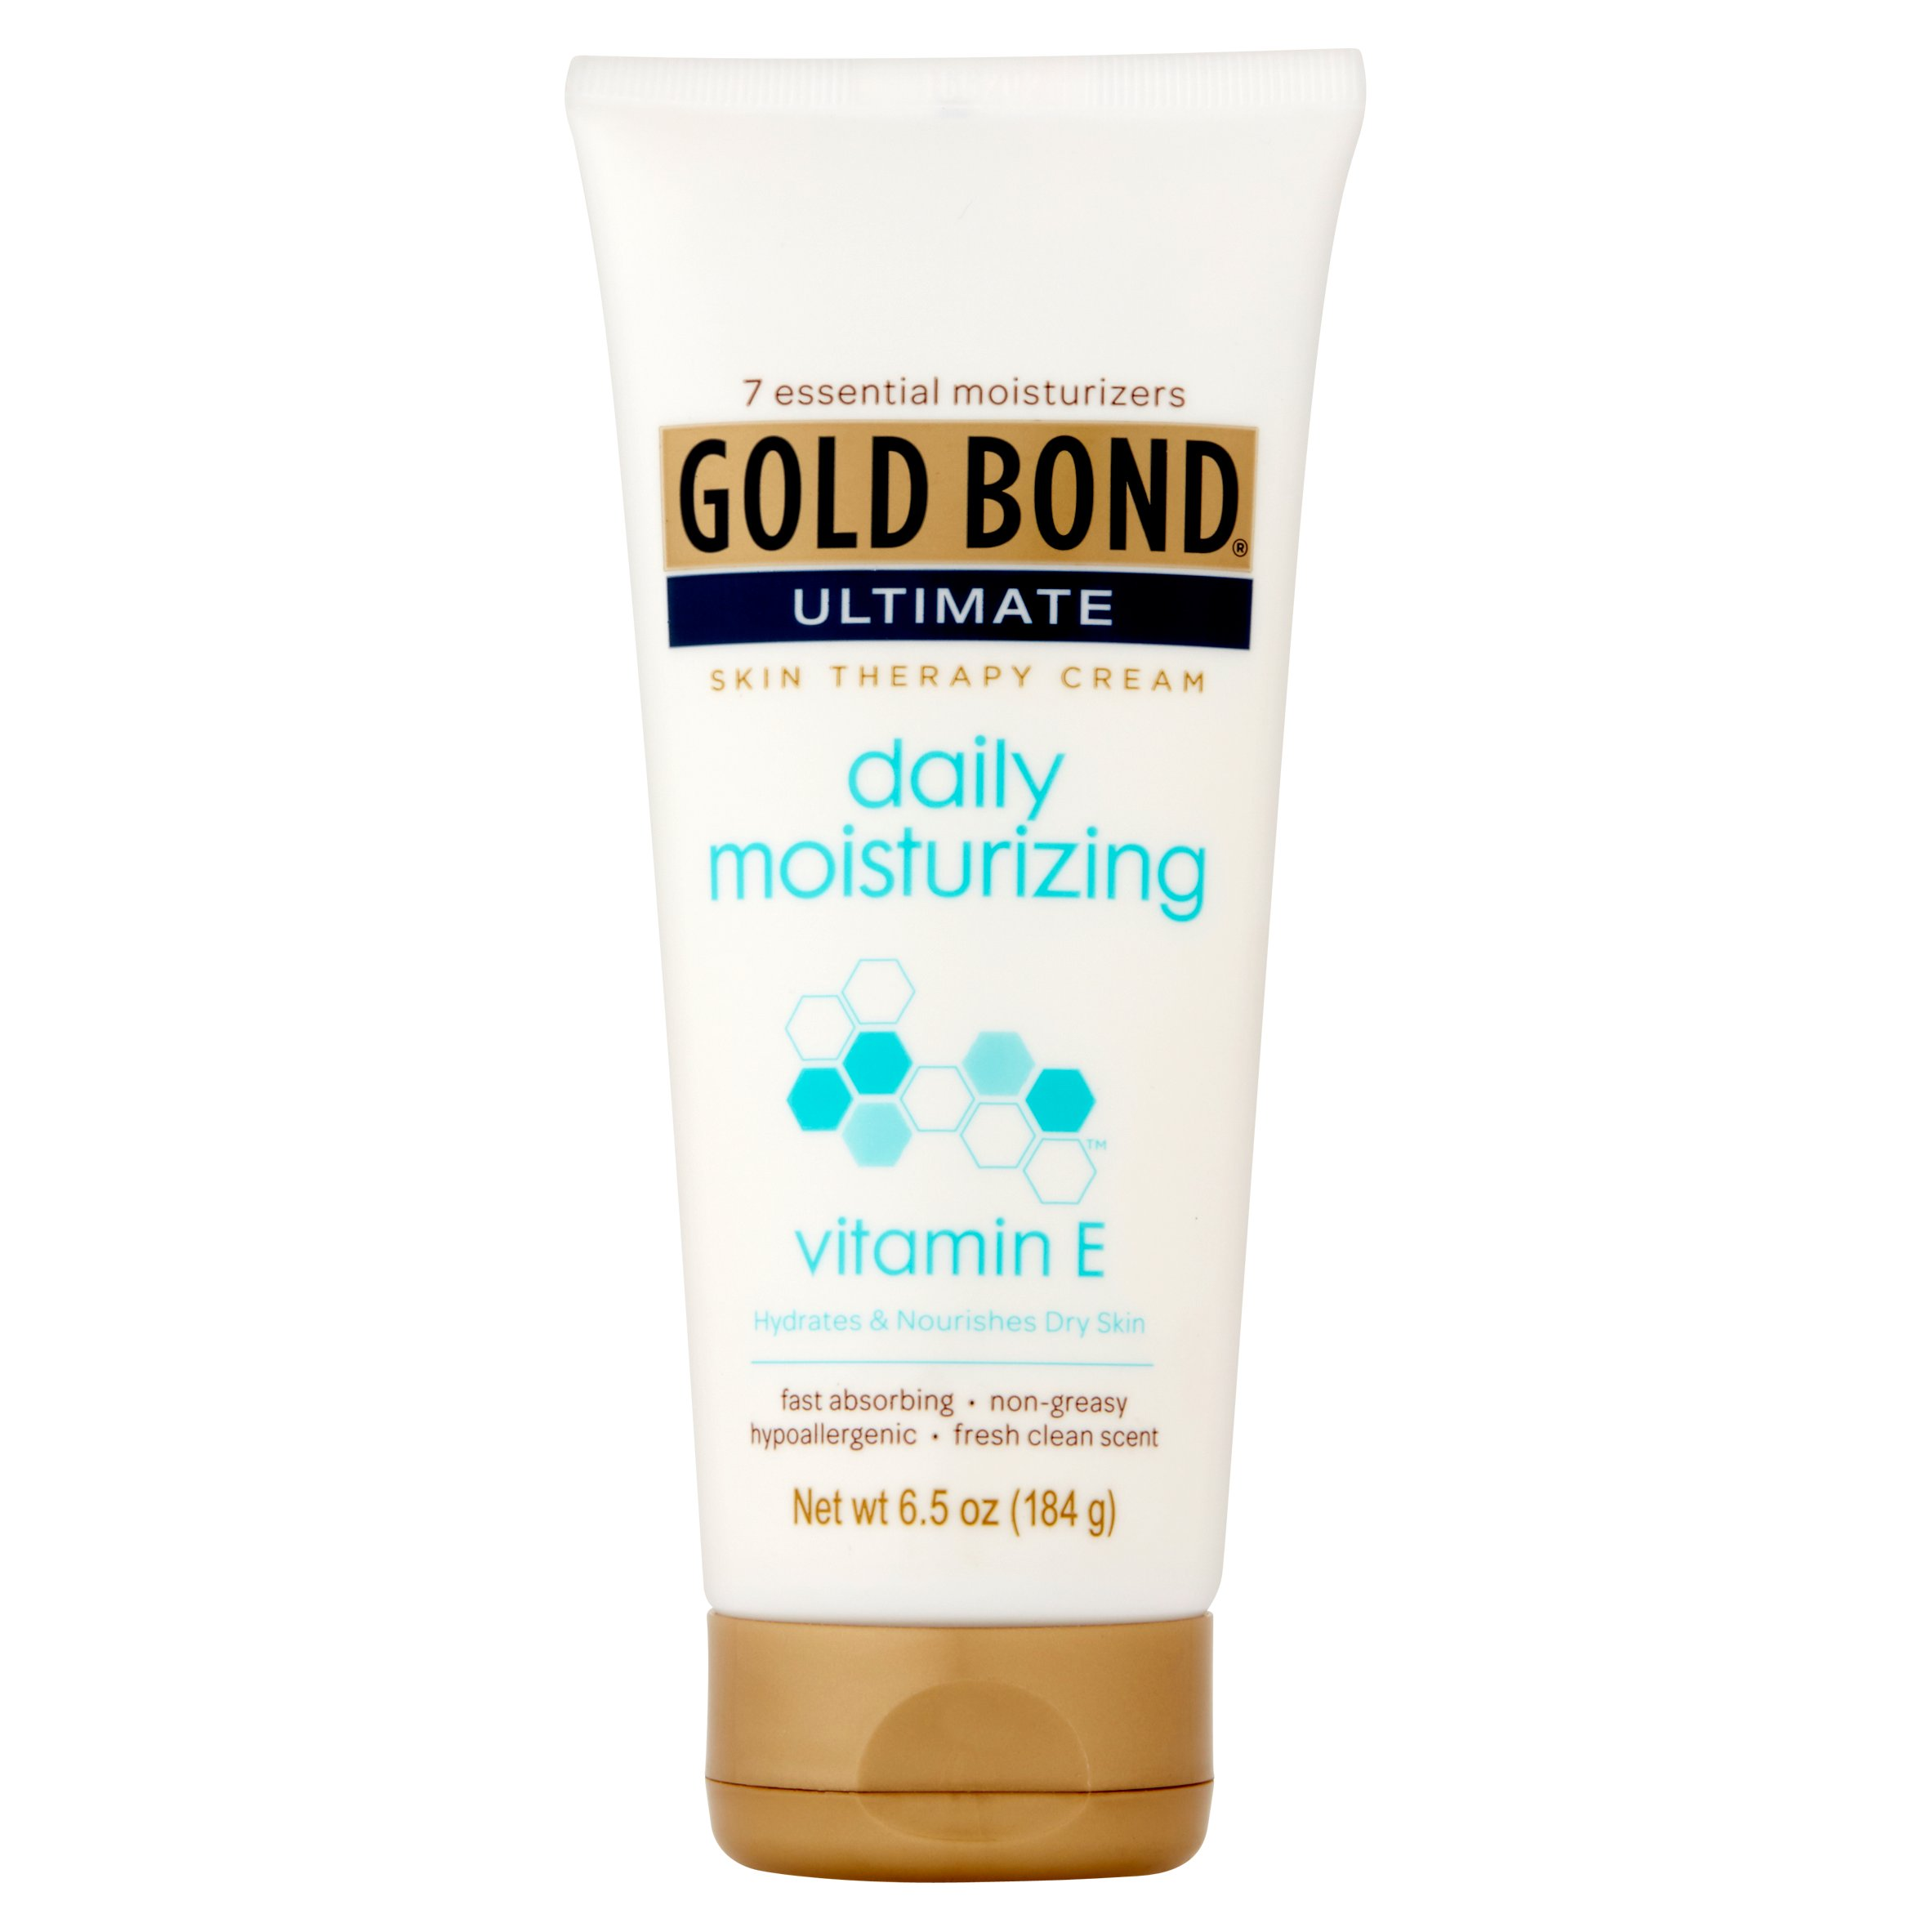 Gold Bond Ultimate Daily Moisturizing Skin Therapy Cream with Vitamin E, 6.5 oz